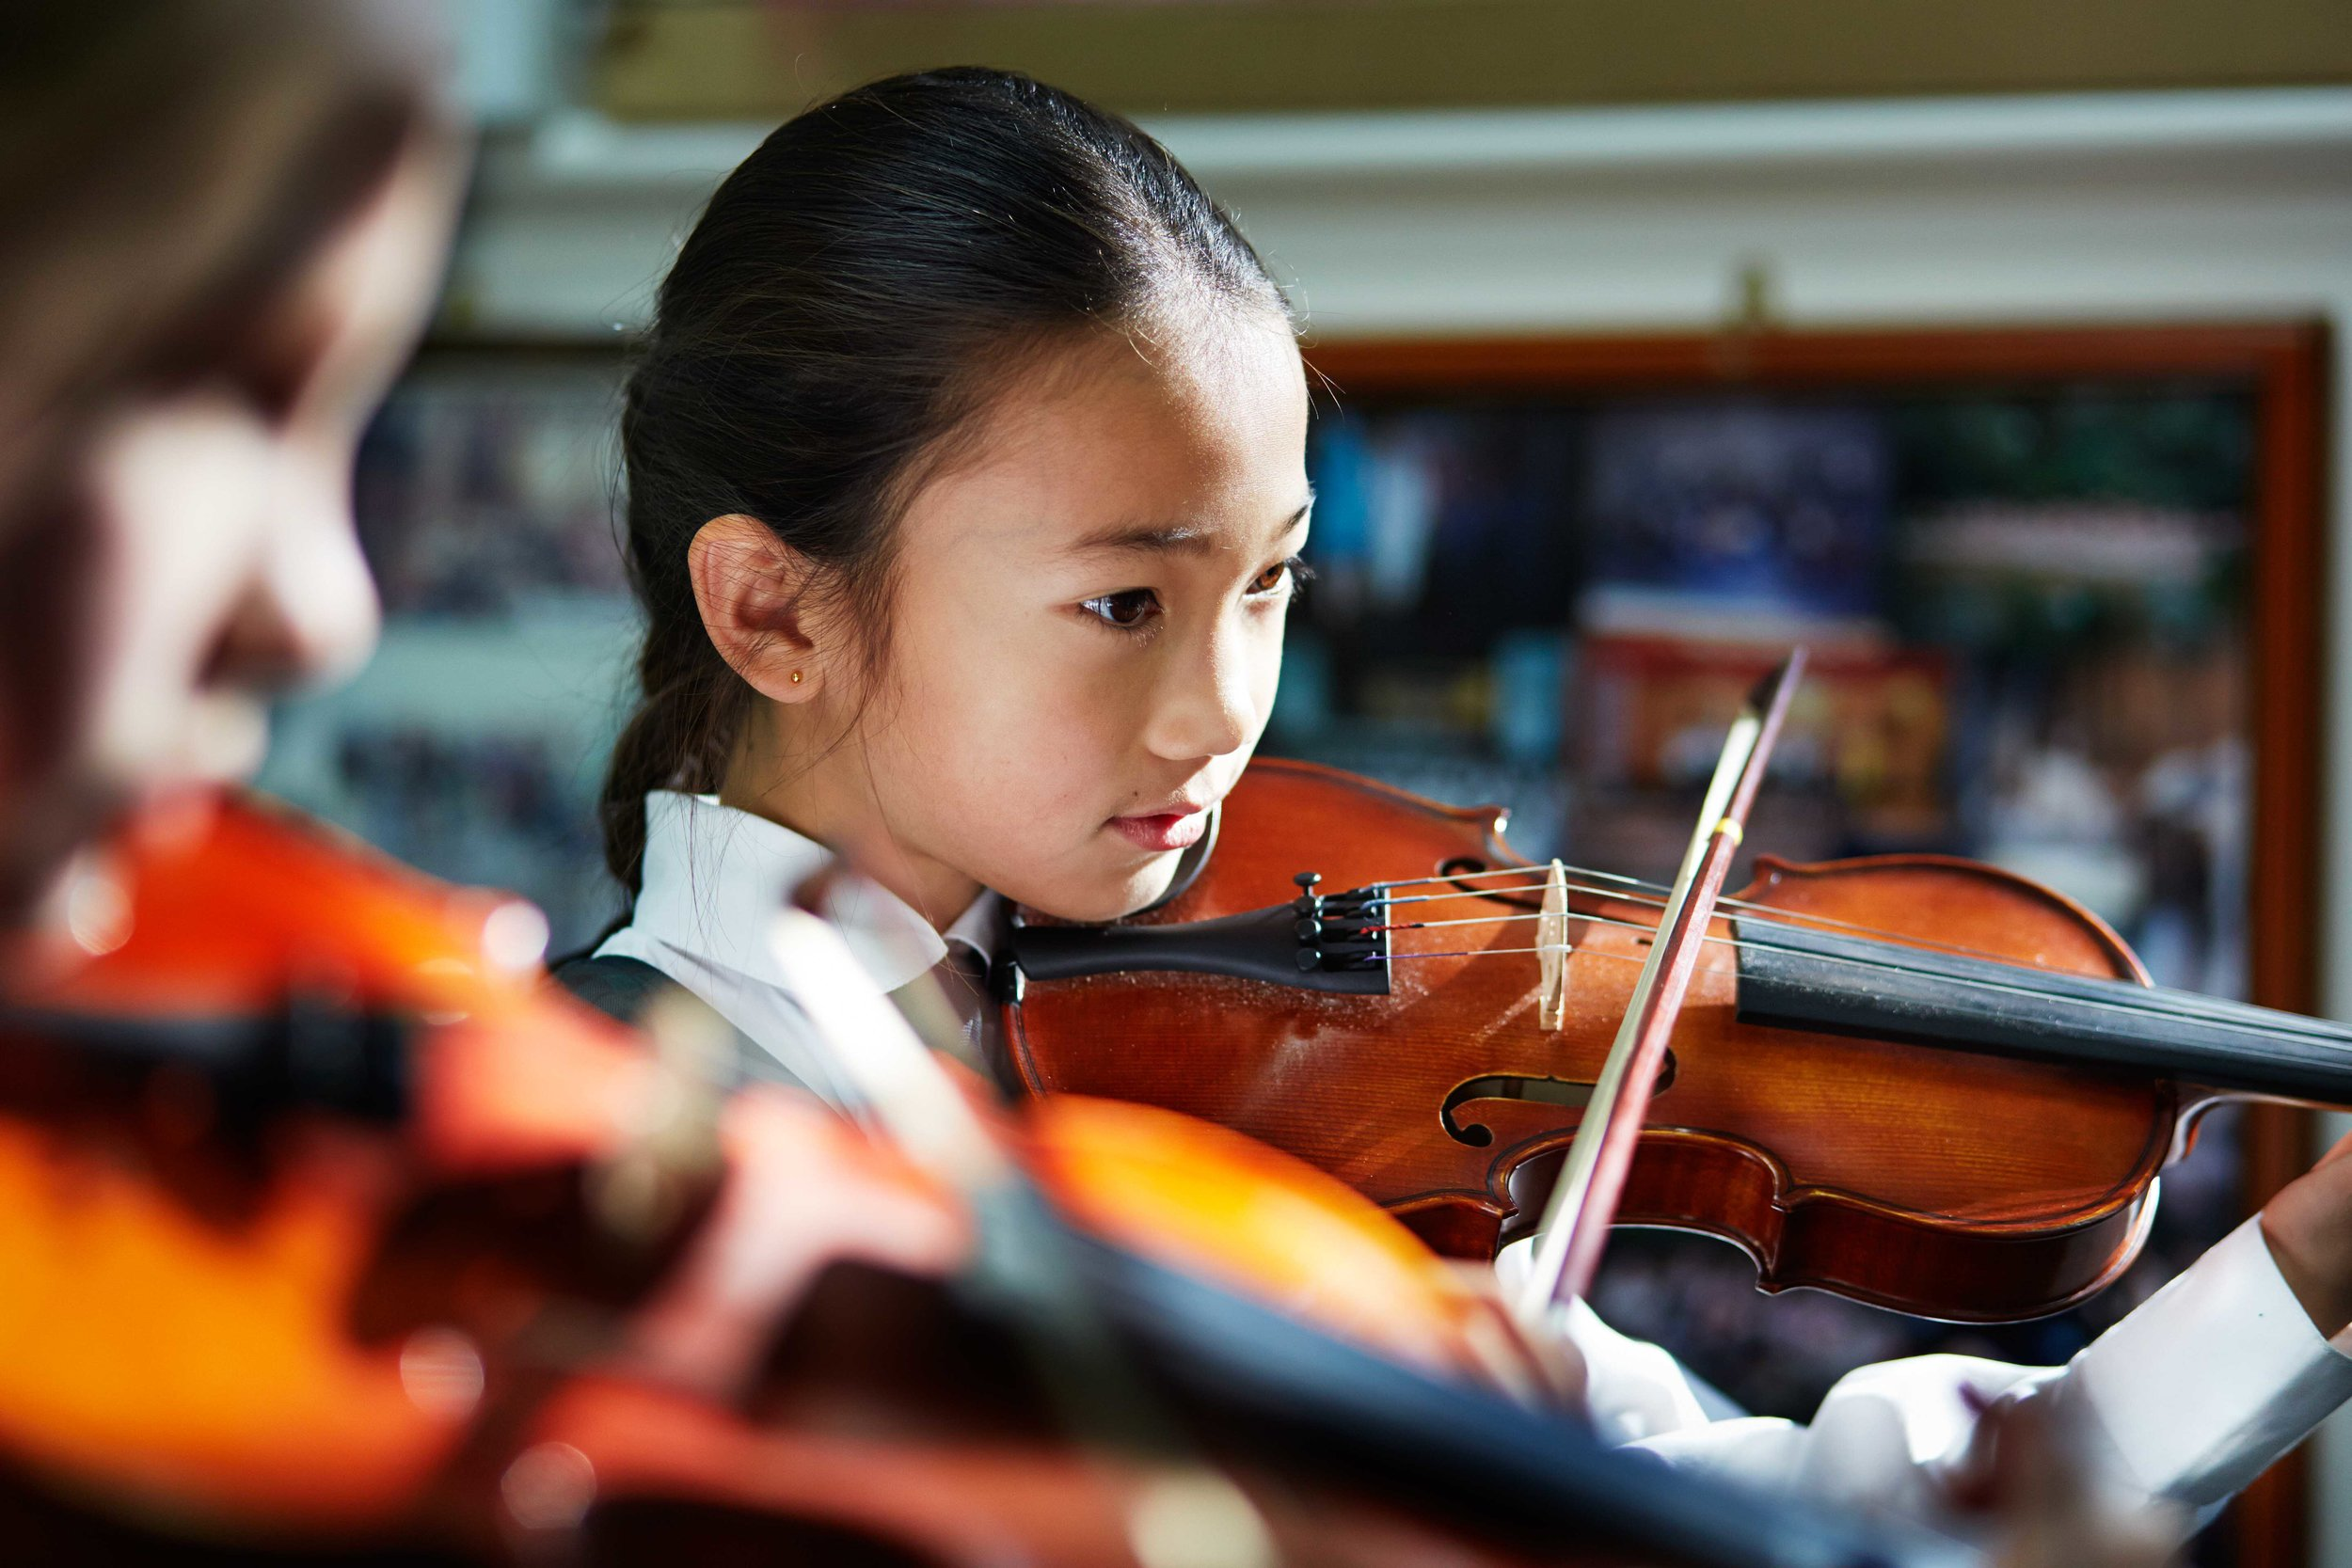 As part of PLC Sydney's rich educational offering, they employ an Artist in Residence, Mathematician in Residence and Composer in Residence, so students are exposed to more than just a utilitarian education.